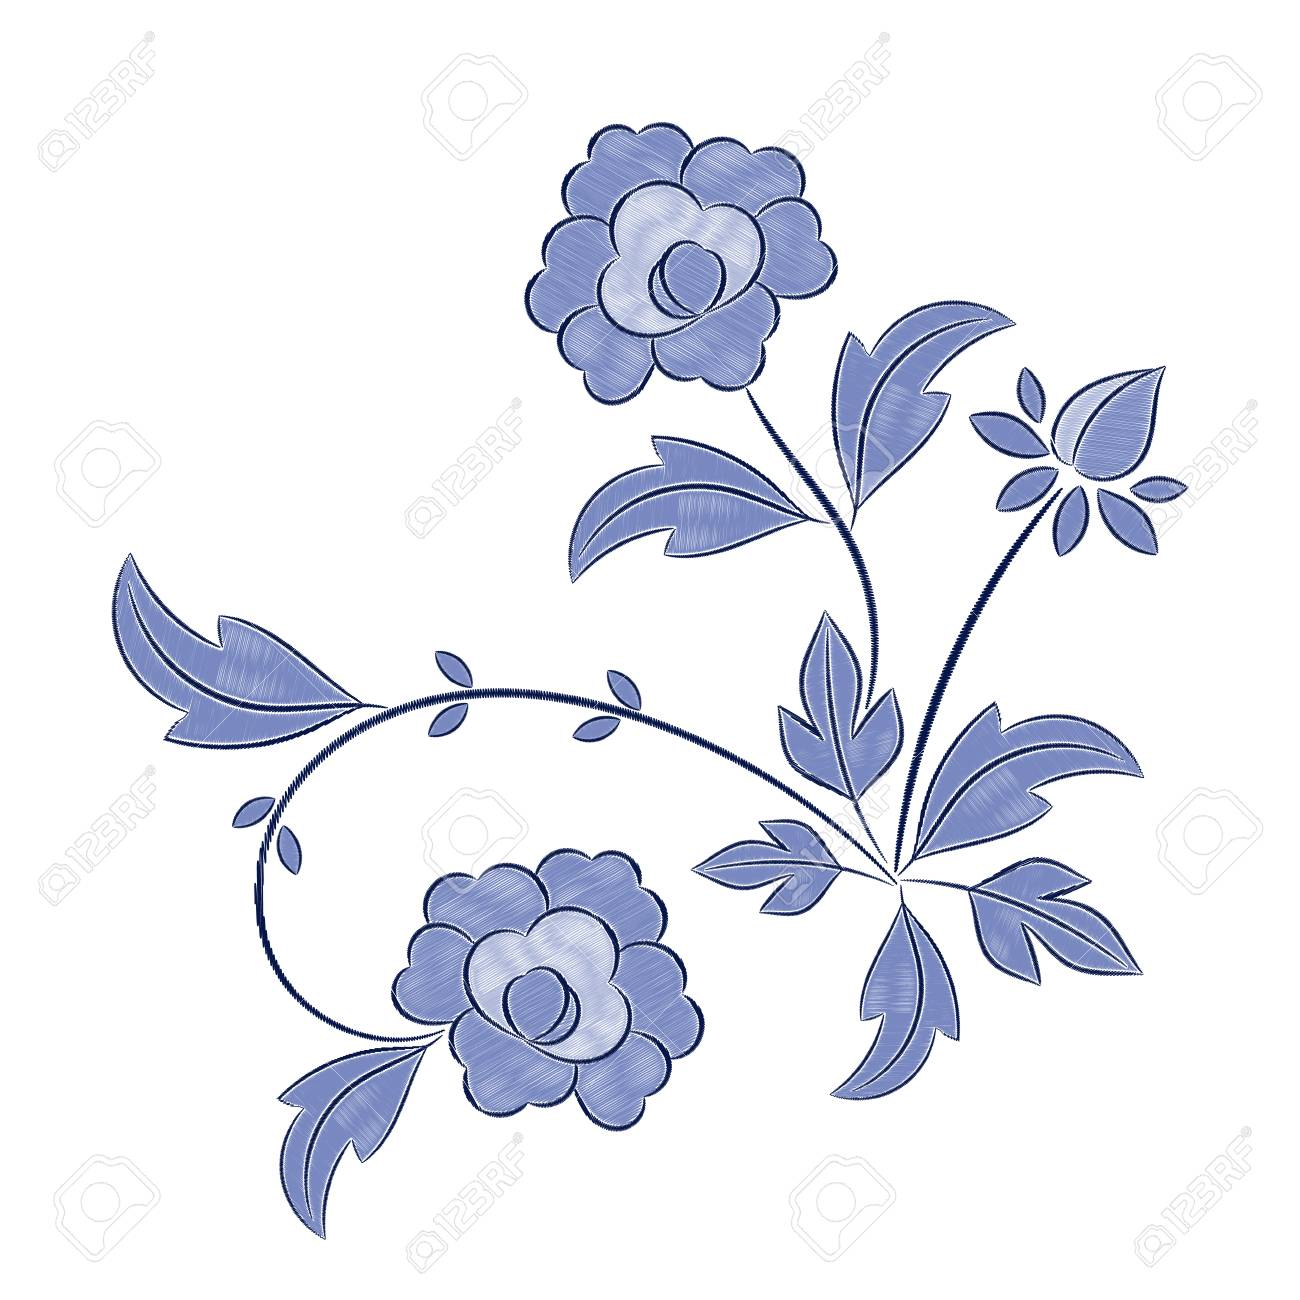 Vintage Floral Embroidery Pattern Vector Peony Blue Flower Ornament Royalty Free Cliparts Vectors And Stock Illustration Image 96218080